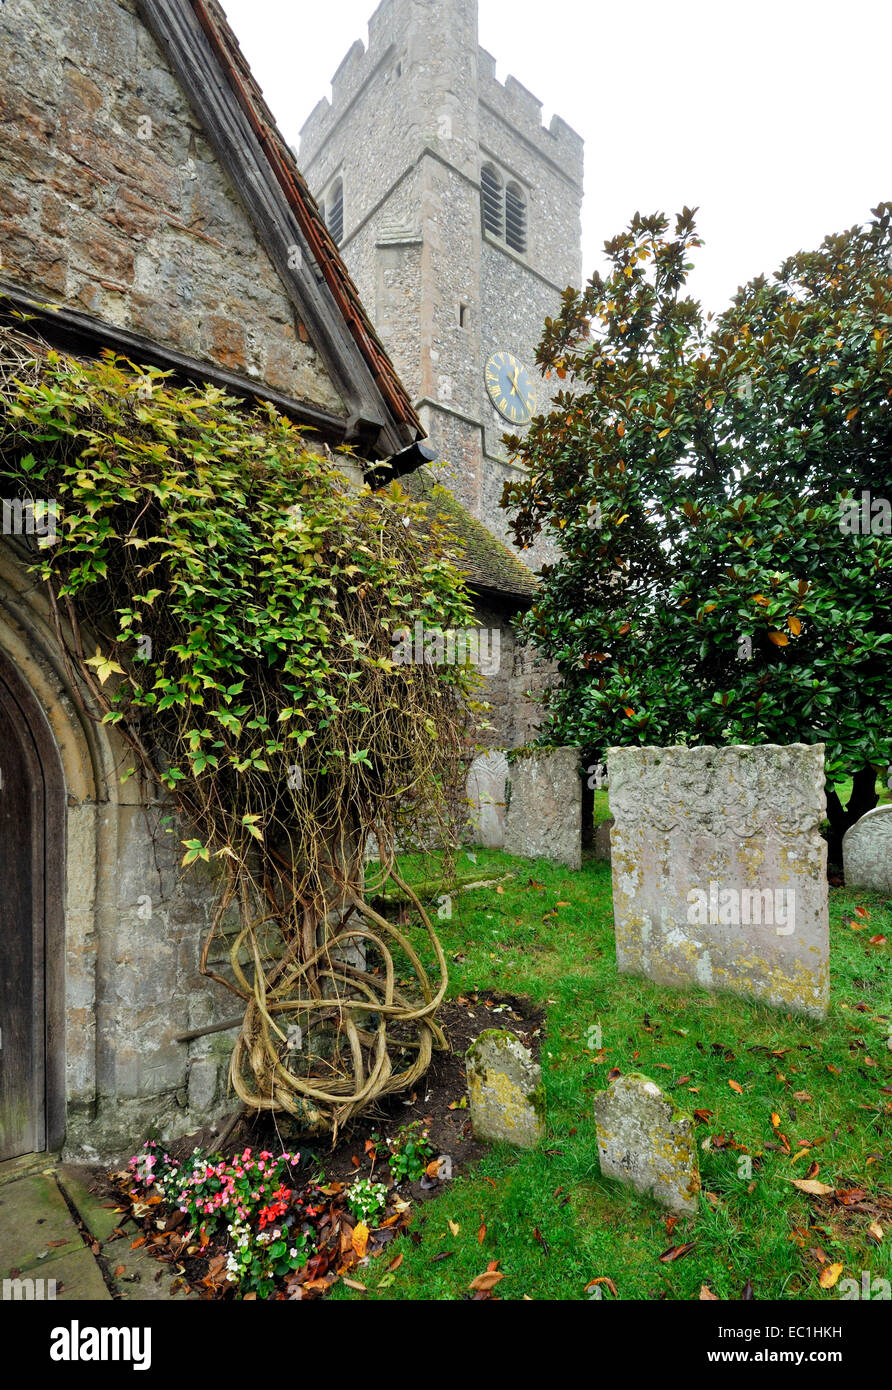 Dickens - graveyard at Shorne Parish church, near to Charles Dickens's Gad's Hill home, and in which the English - Stock Image